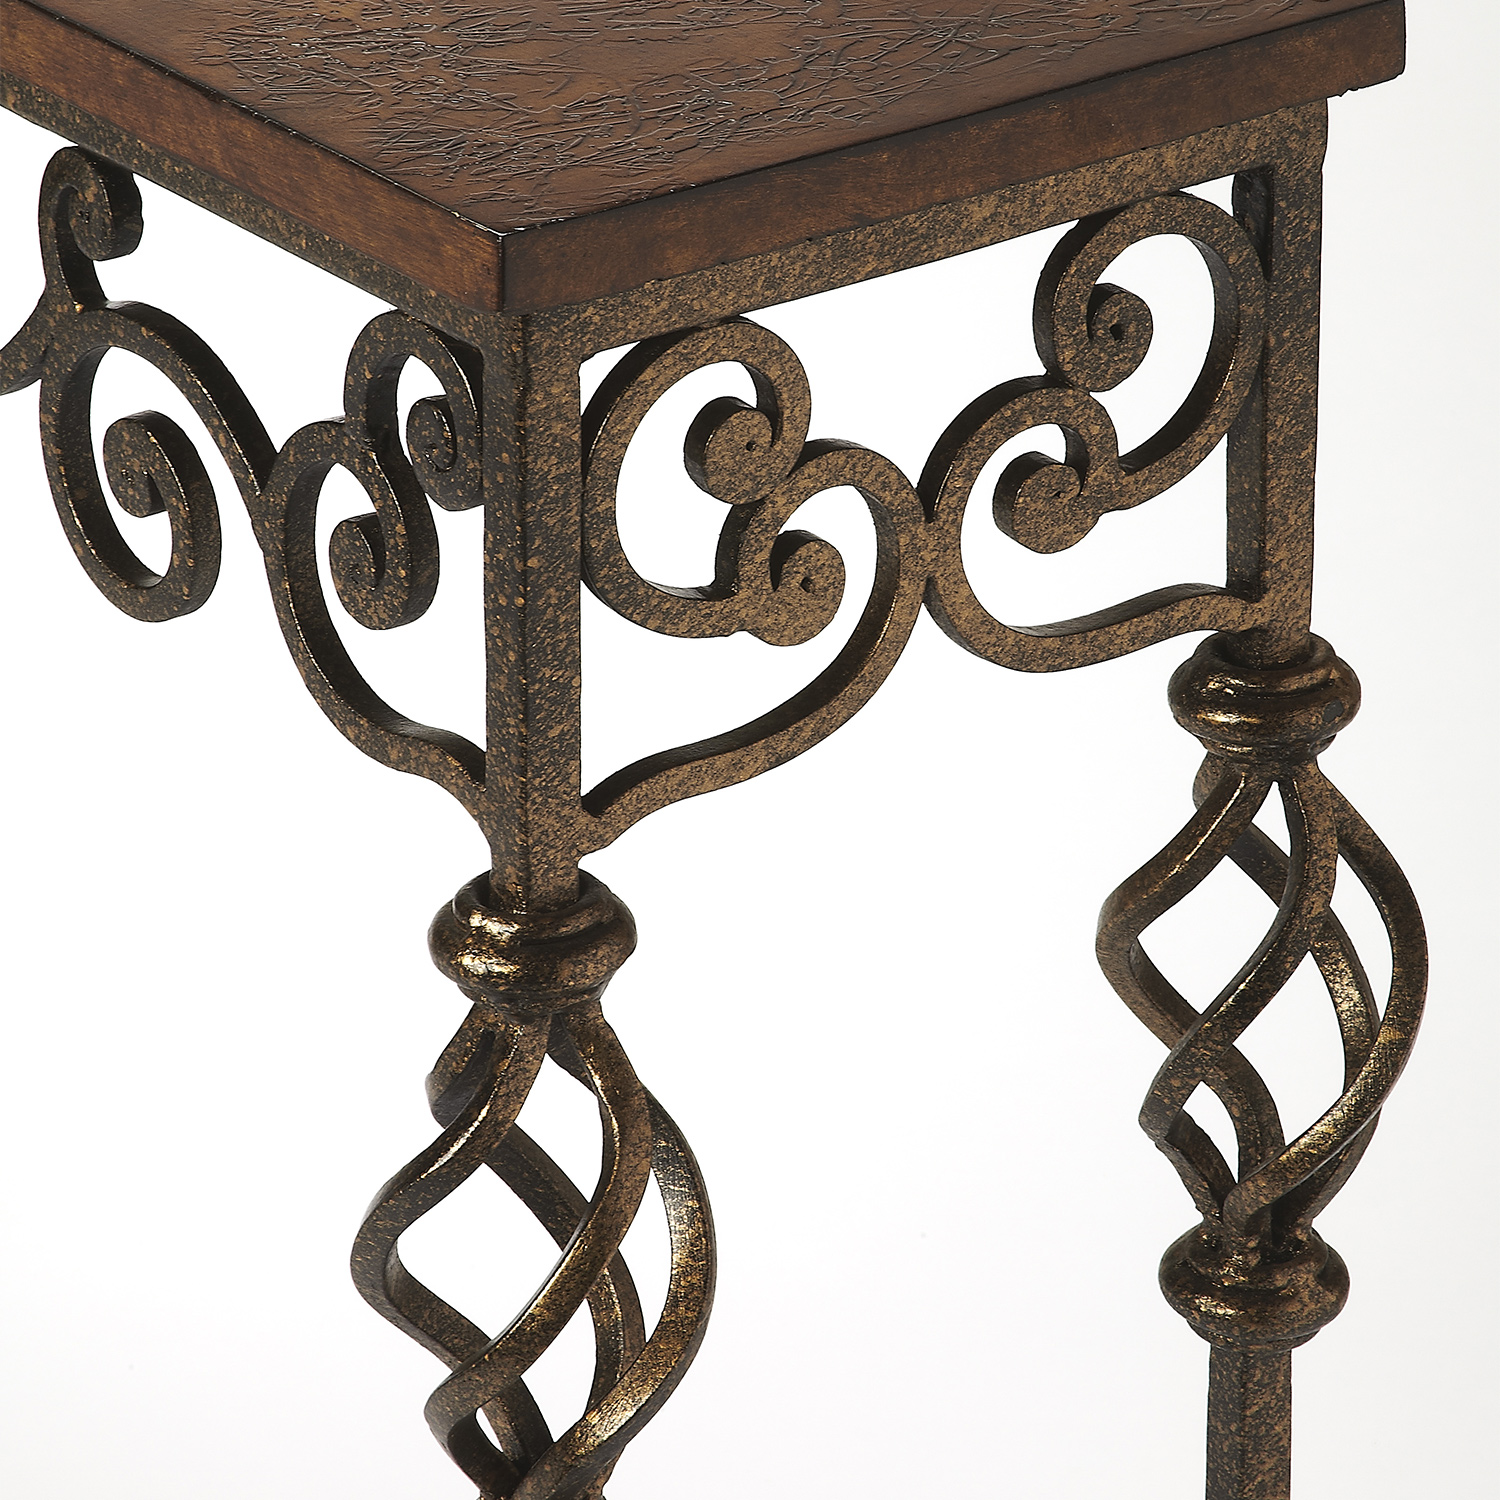 Algiers Wrought Iron Console Table